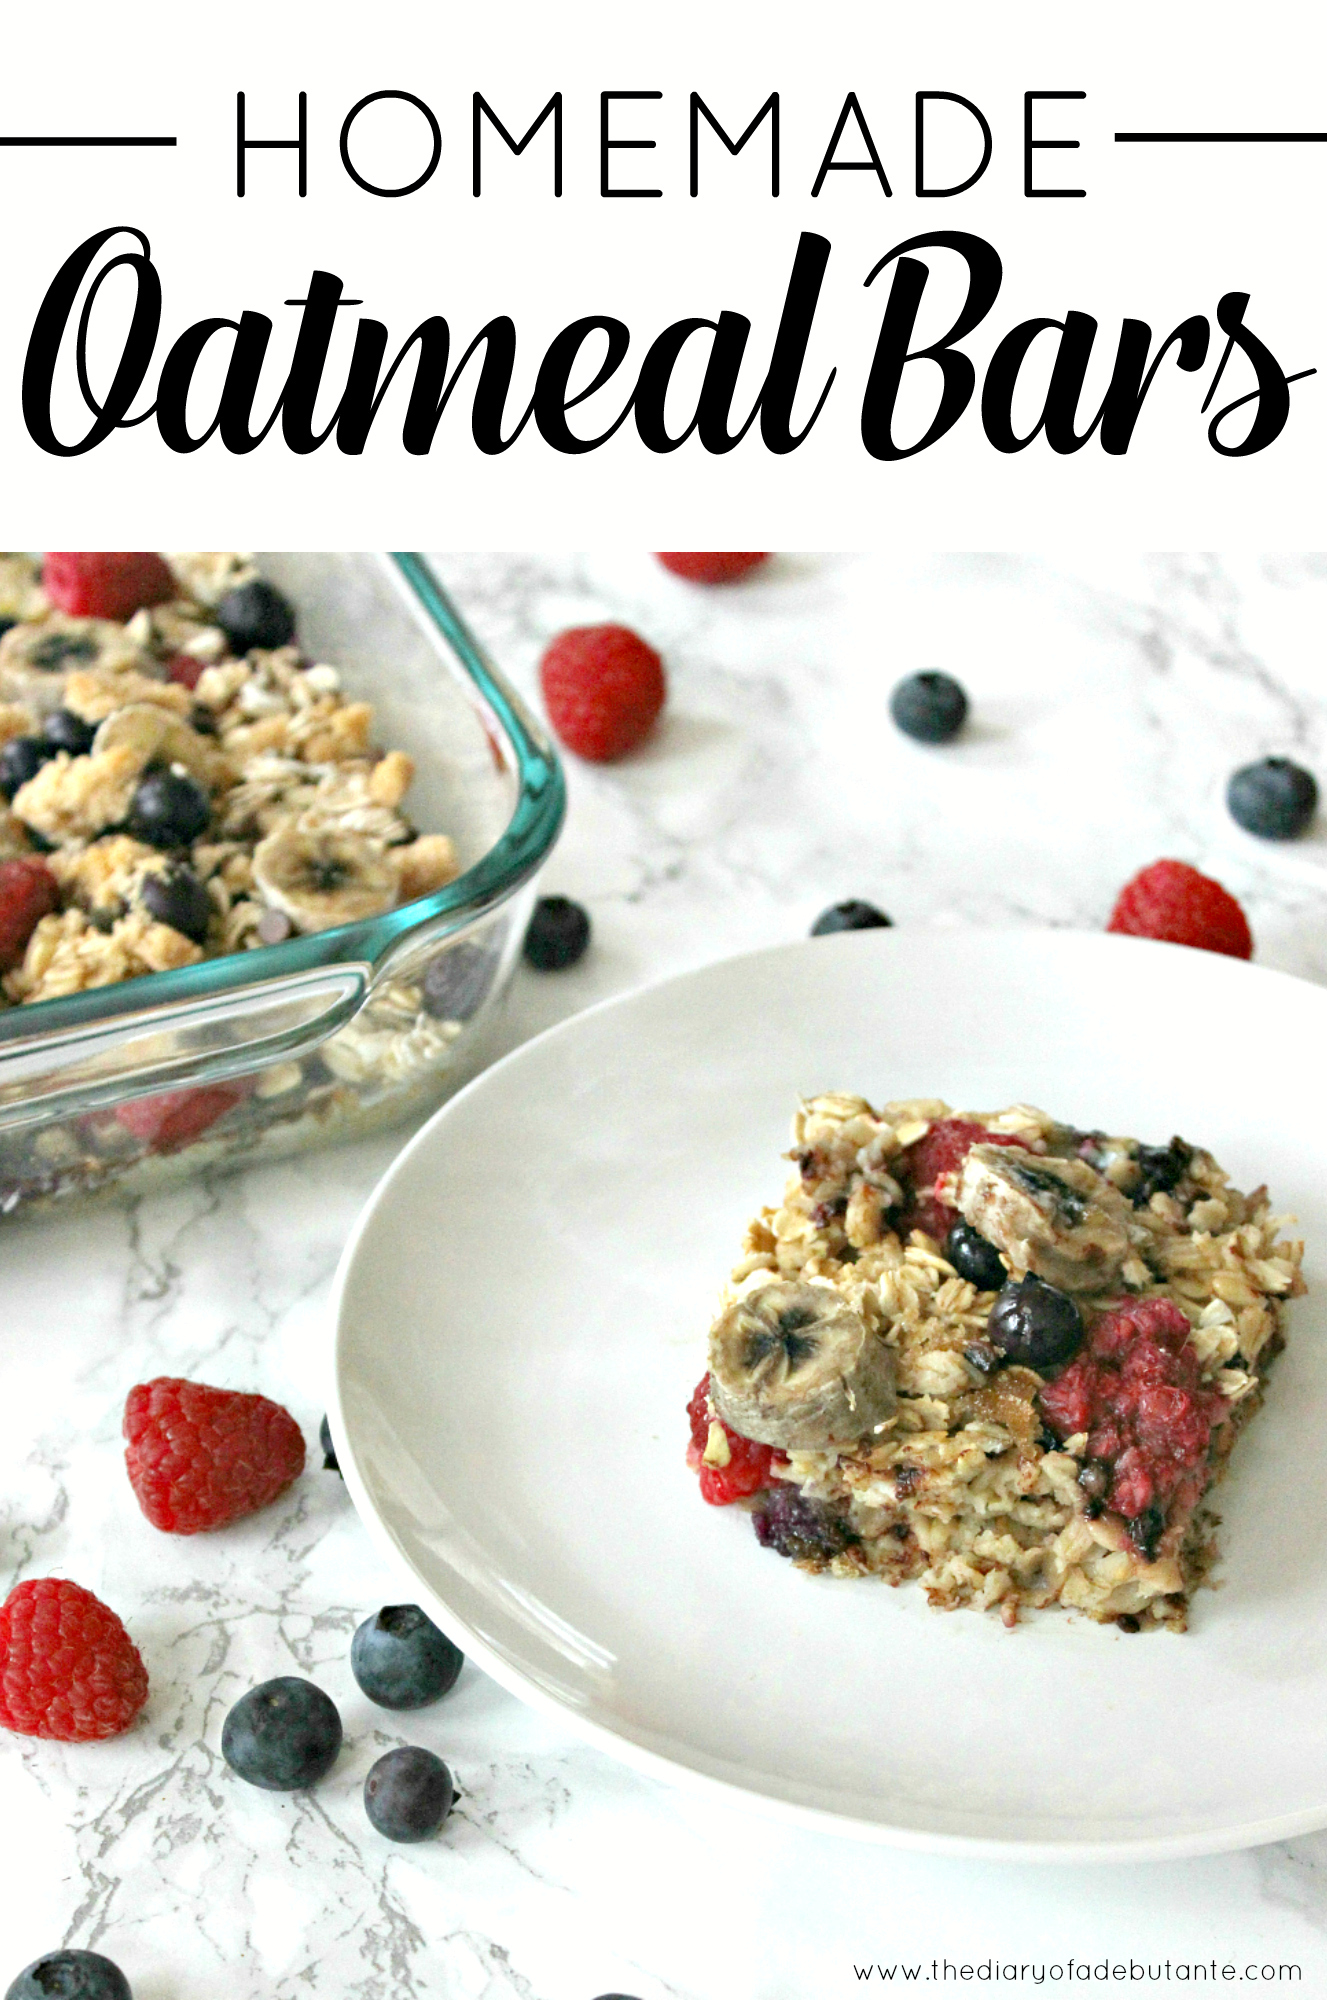 A simple recipe for delicious and low calorie homemade oatmeal bars that will last for up to one week in the fridge!